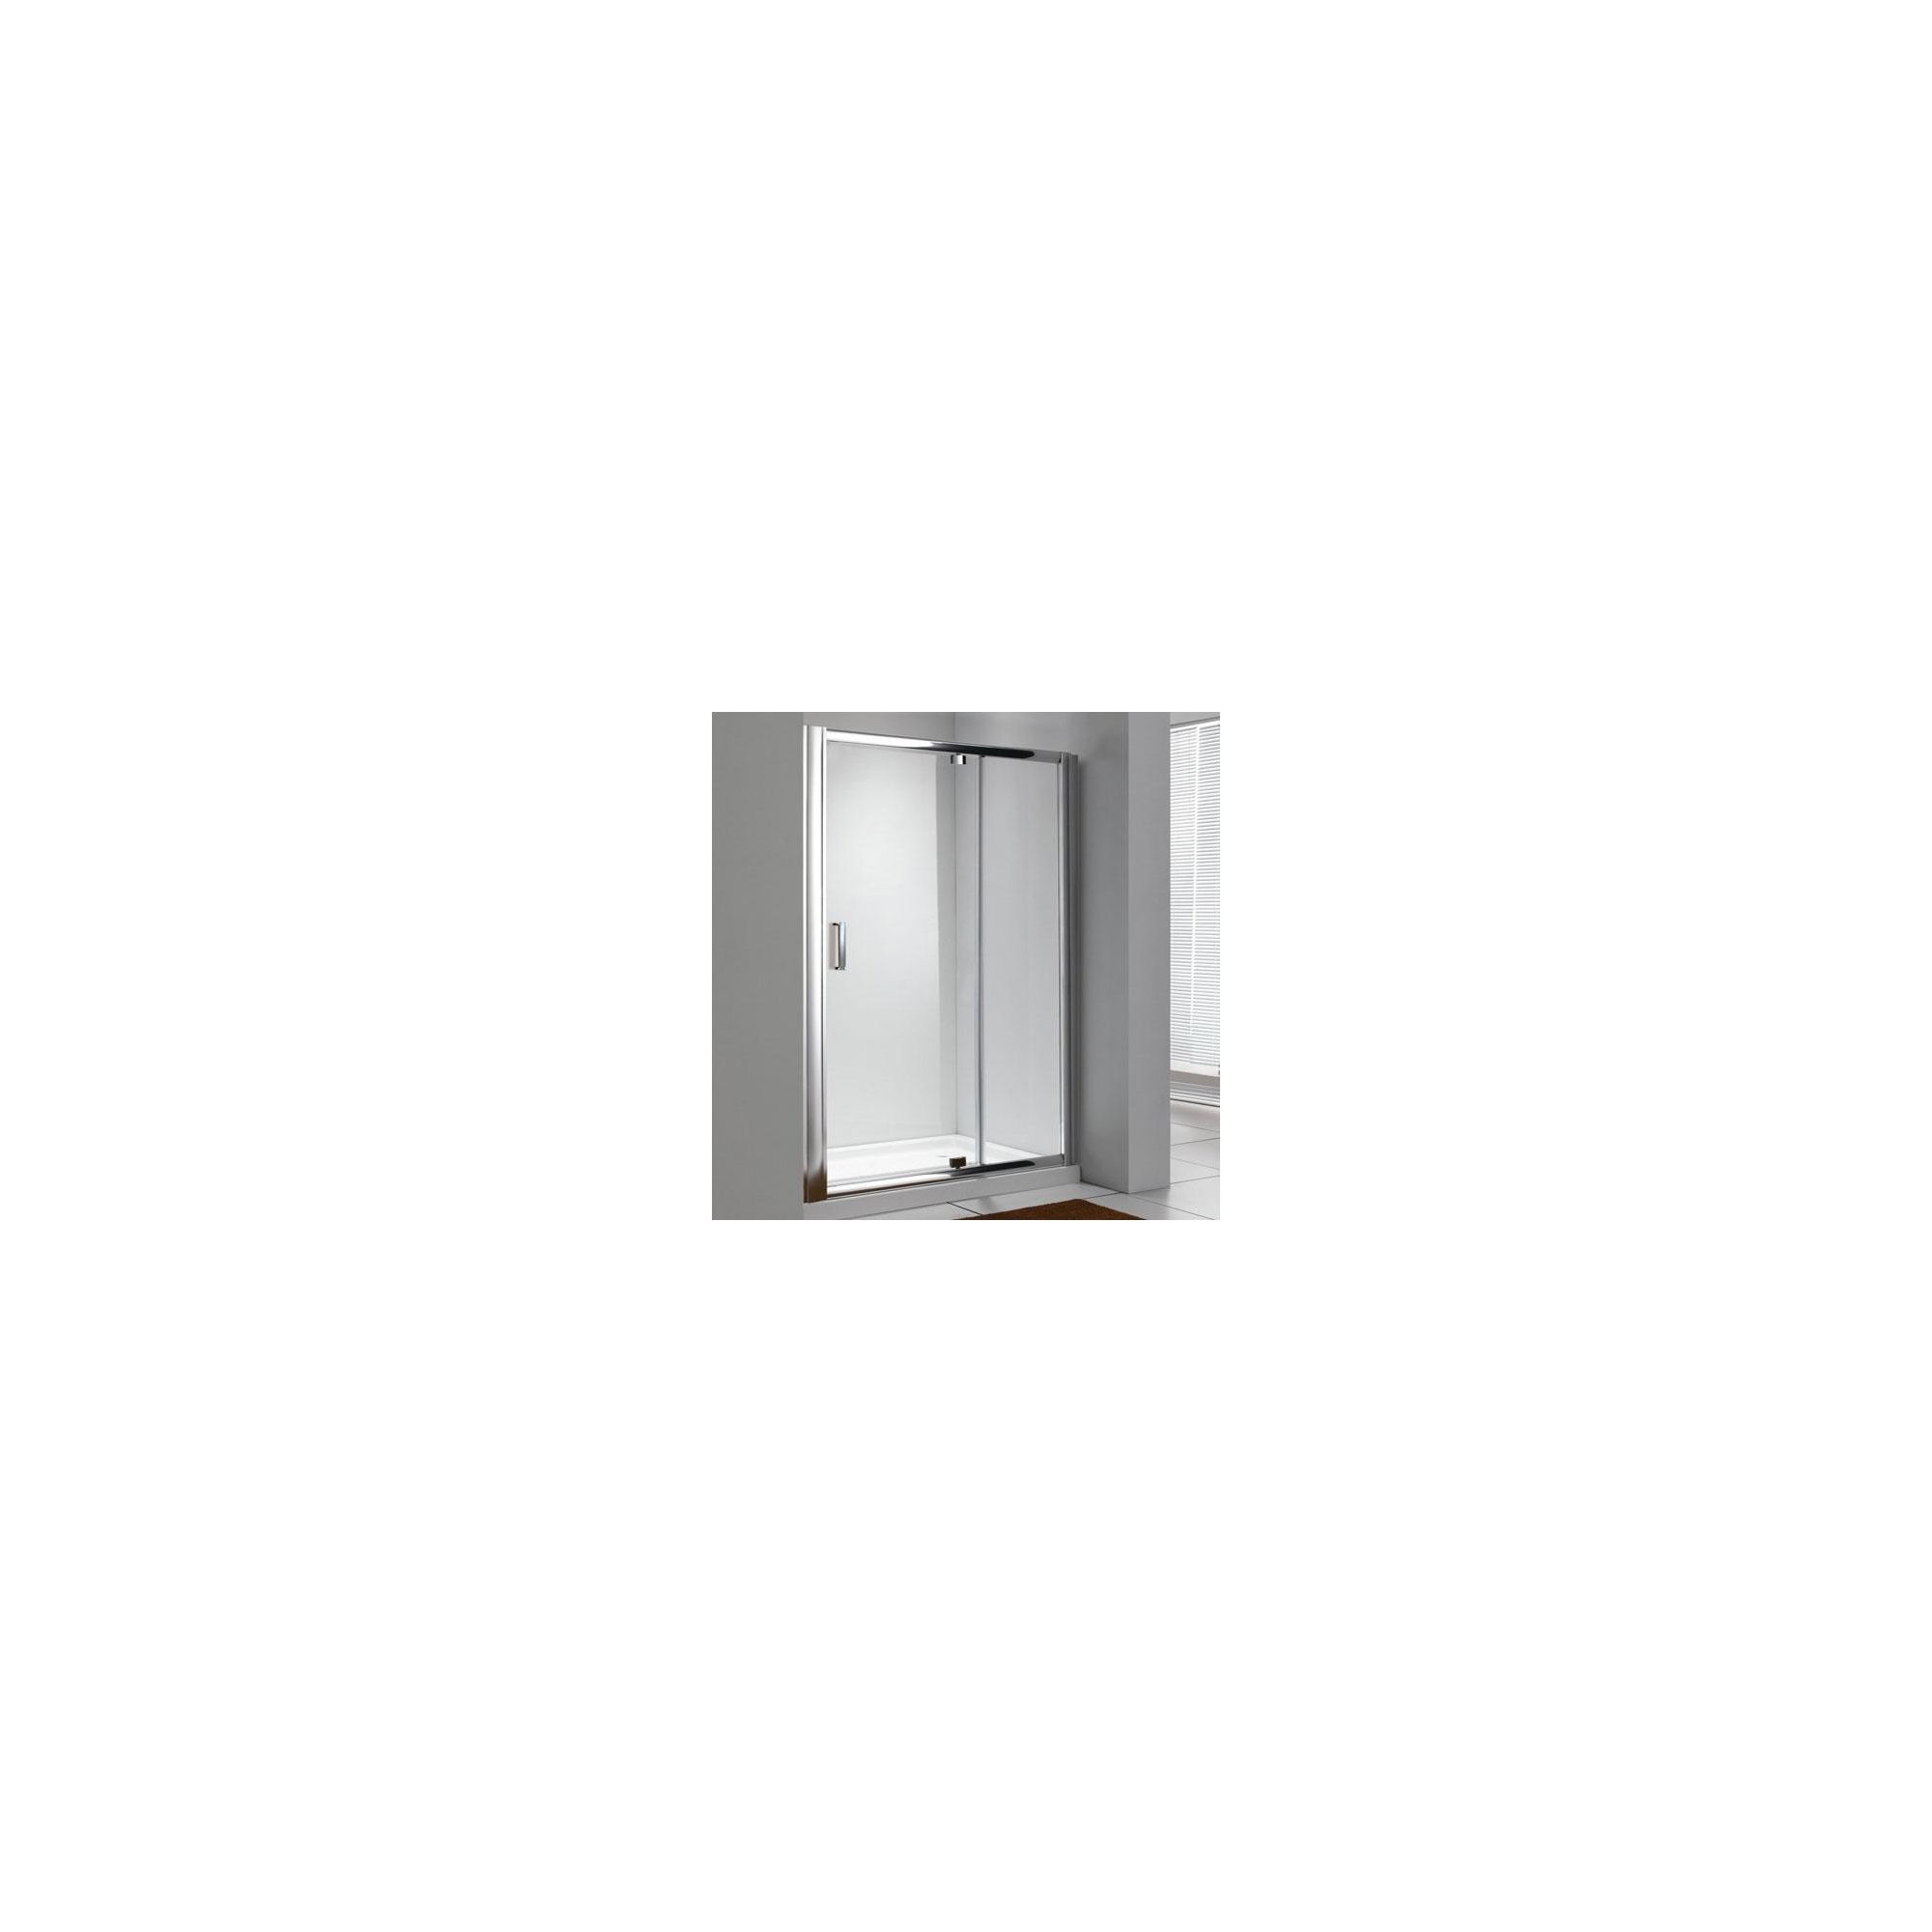 Duchy Style Pivot Door Shower Enclosure, 1000mm x 700mm, 6mm Glass, Low Profile Tray at Tesco Direct